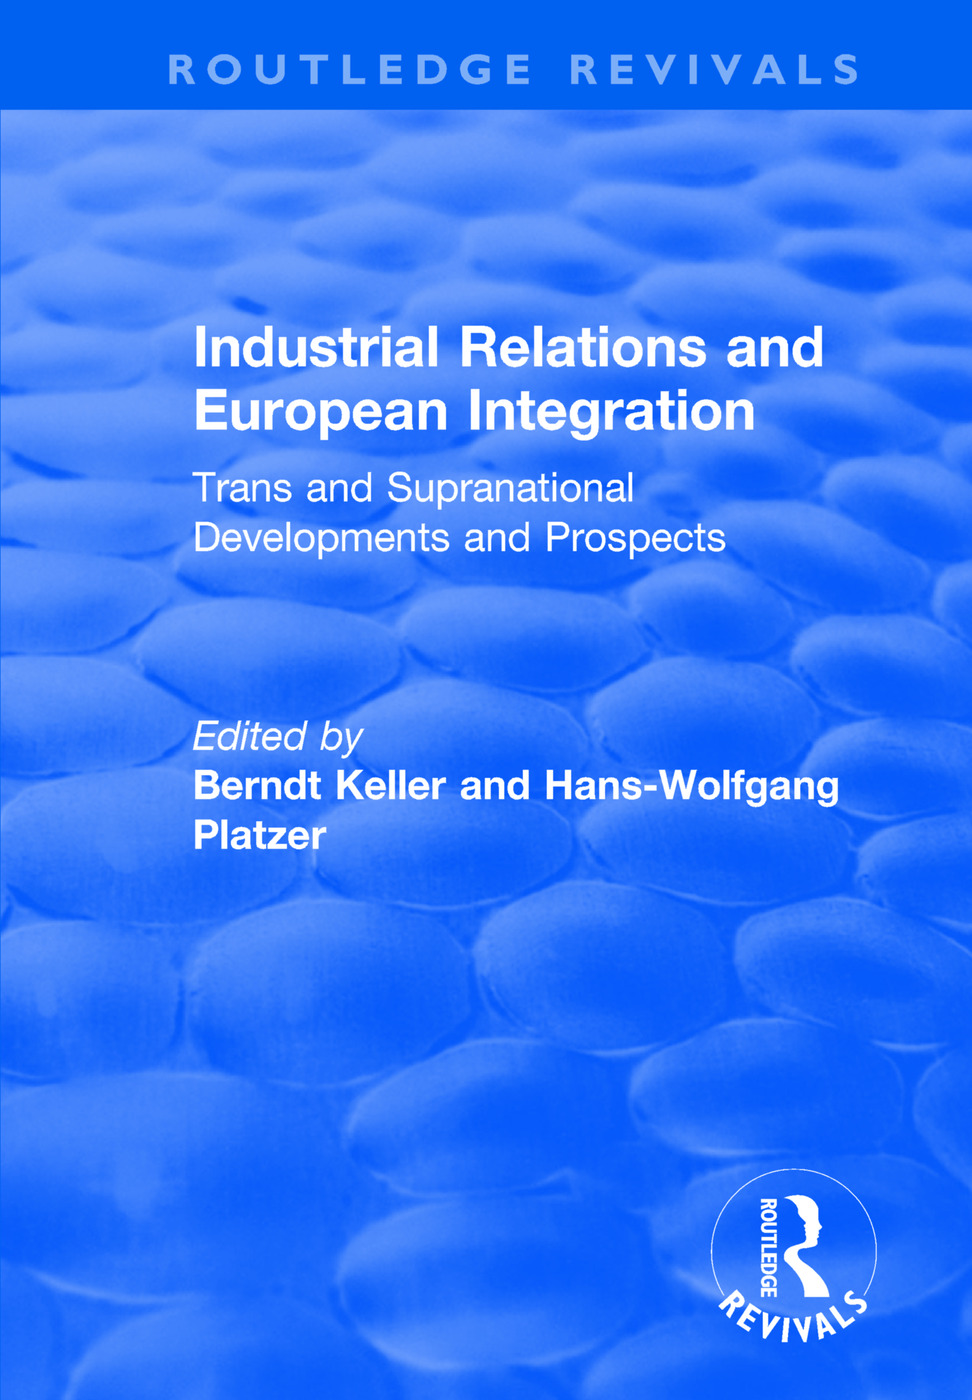 Industrial Relations and European Integration: Trans and Supranational Developments and Prospects: Trans and Supranational Developments and Prospects, 1st Edition (Paperback) book cover